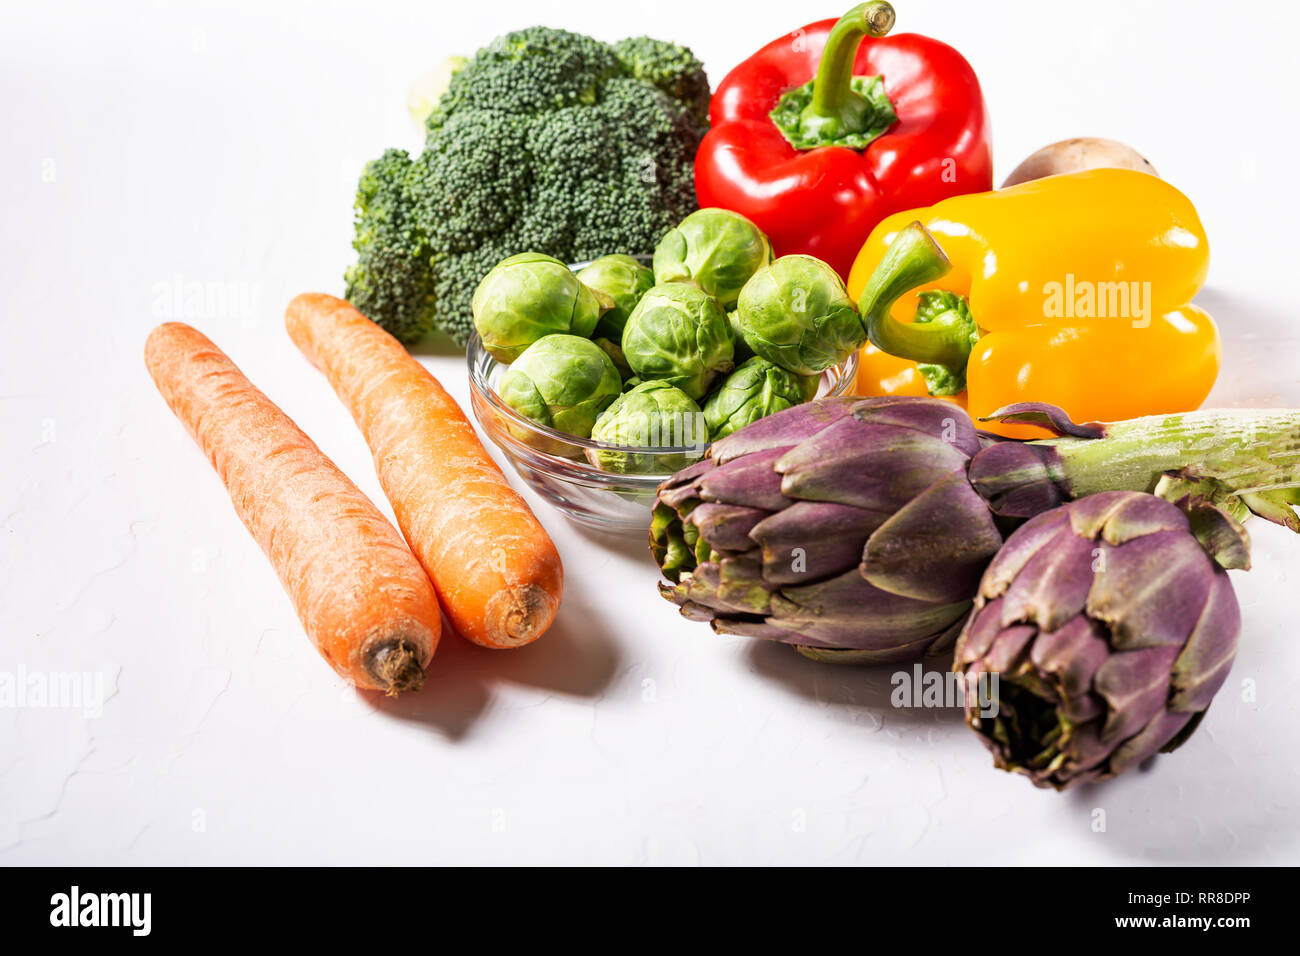 Background of healthy food and clean eating with fruit, vegetable, superfood, leaf vegetable. Soft focus. - Stock Image